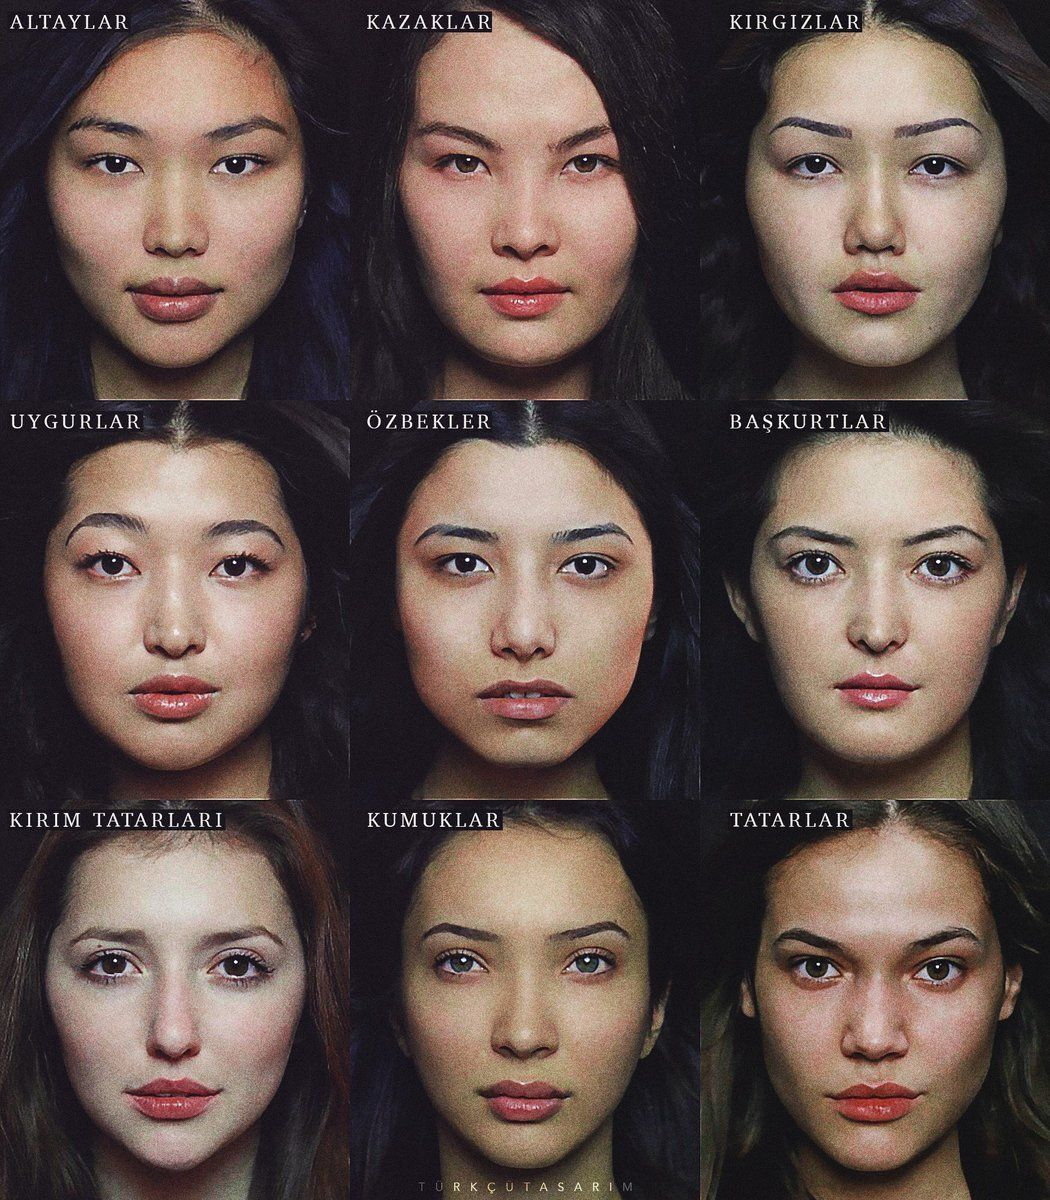 Turkic woman from different ethnic groups (Altai,.